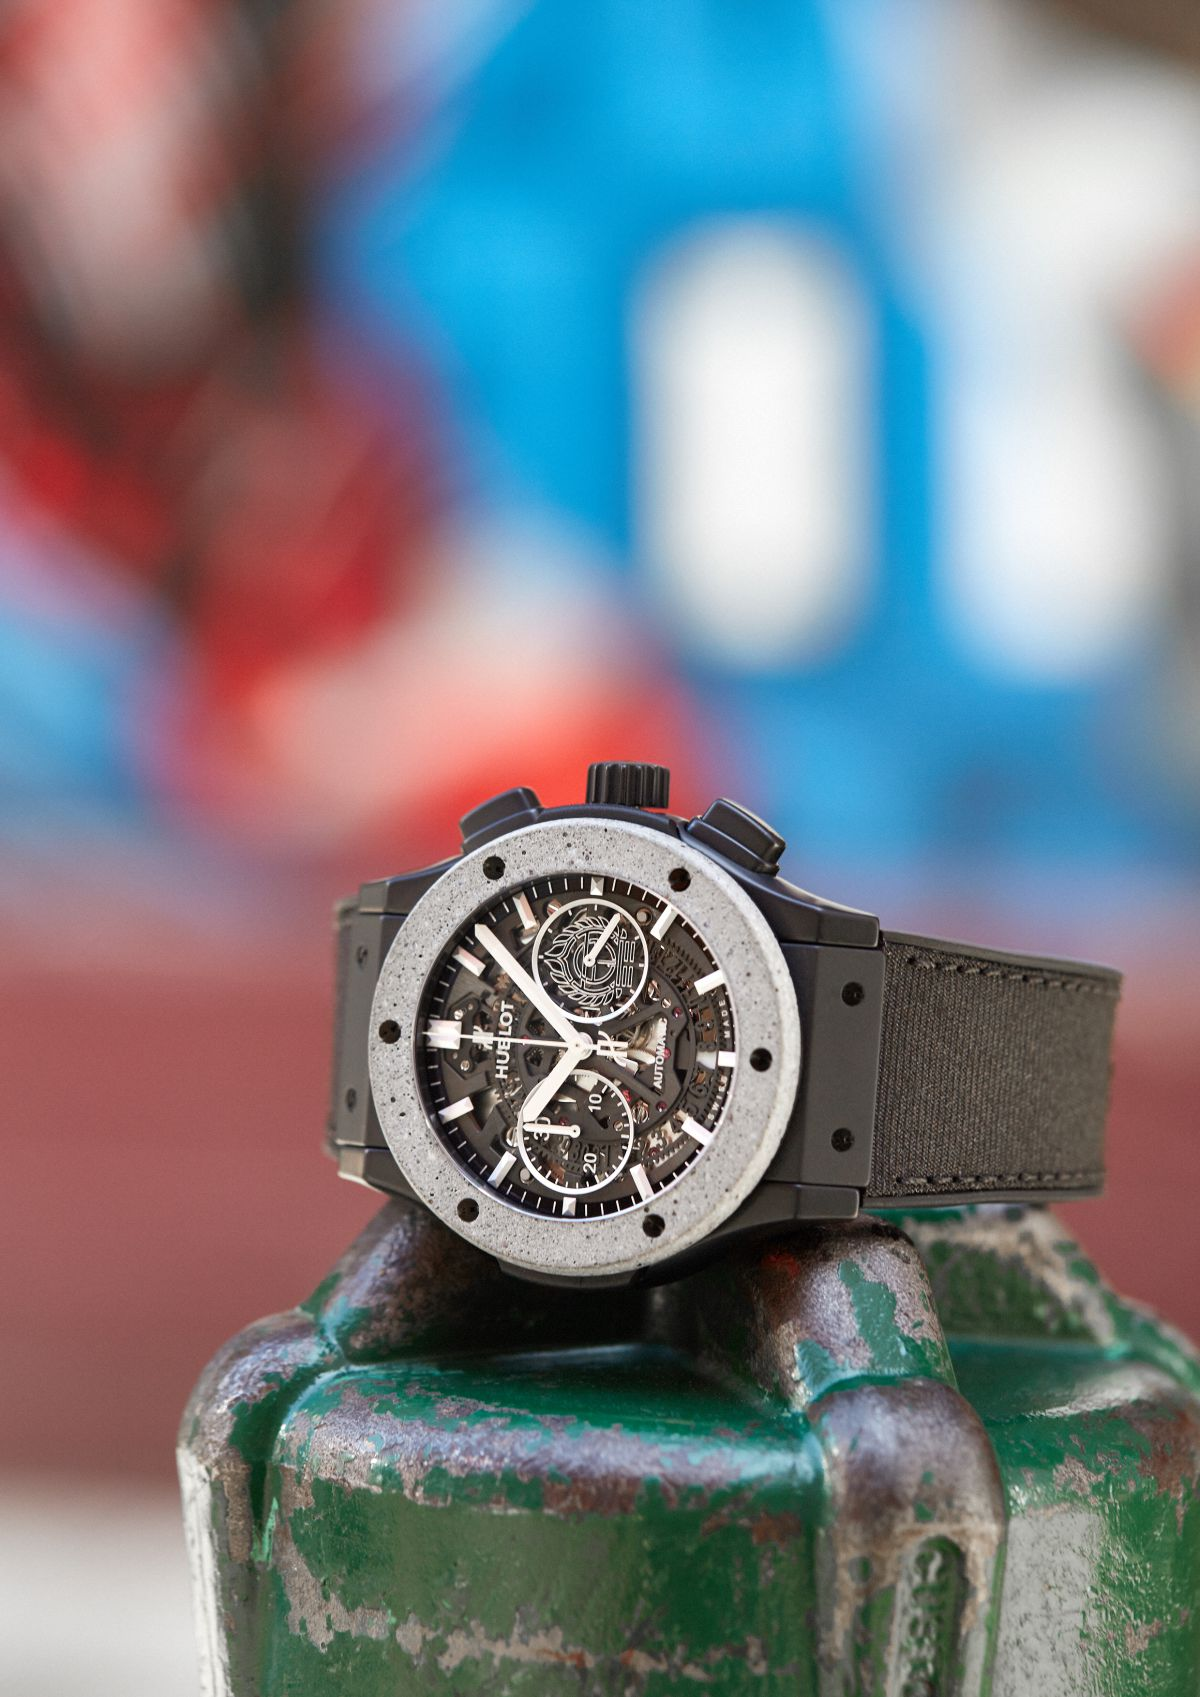 HUBLOT-CLASS-C-FUS-ON-AEROFUS-ON-CHRONOGRAPH-SPEC-AL-ED-T-ON-CONCRETE-JUNGLE-7.jpg